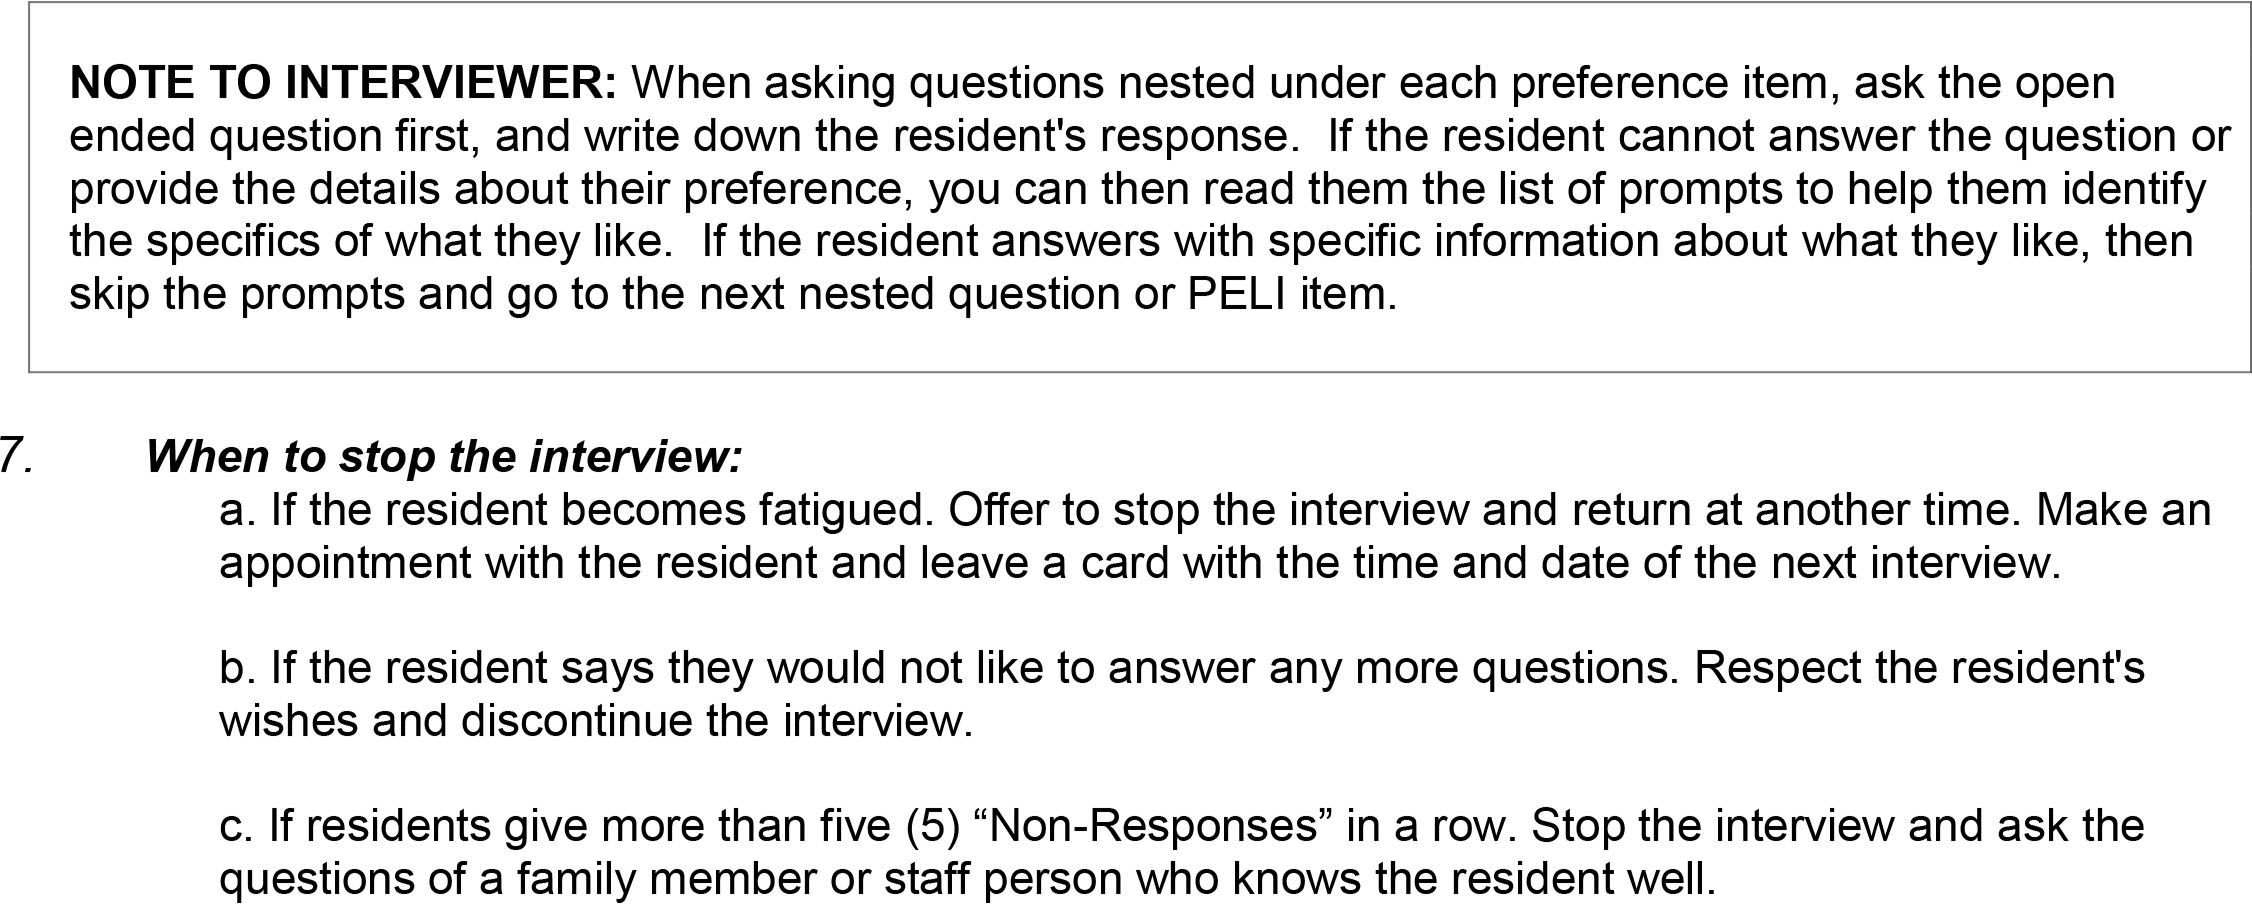 cognitive interviewing revising the preferences for everyday preferences for everyday living inventory nursing home version peli nh